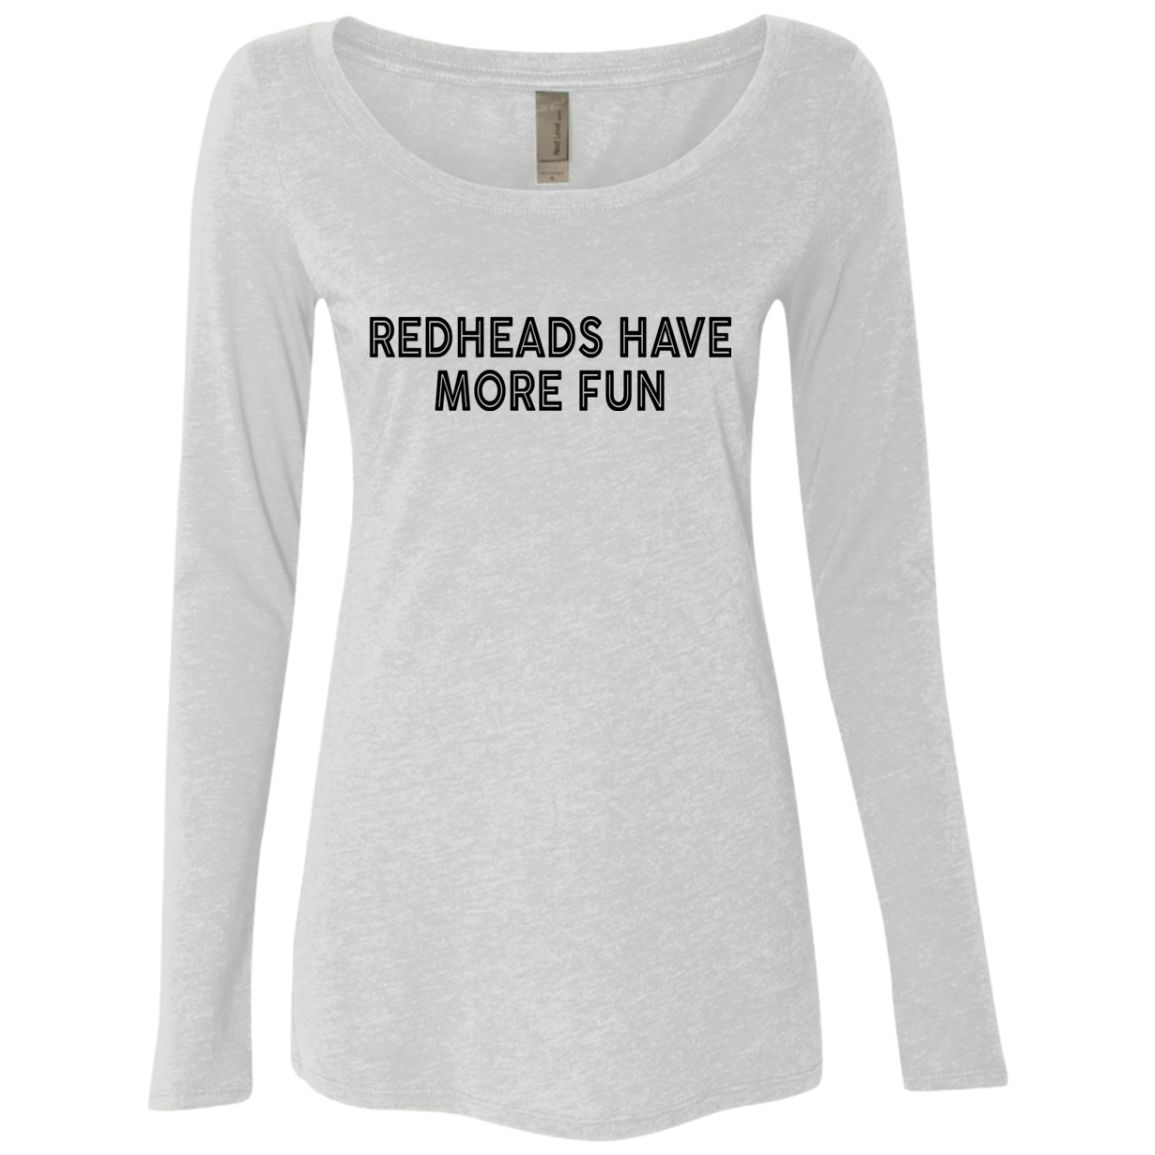 Redheads Have More Fun Women's Long Sleeve Tee